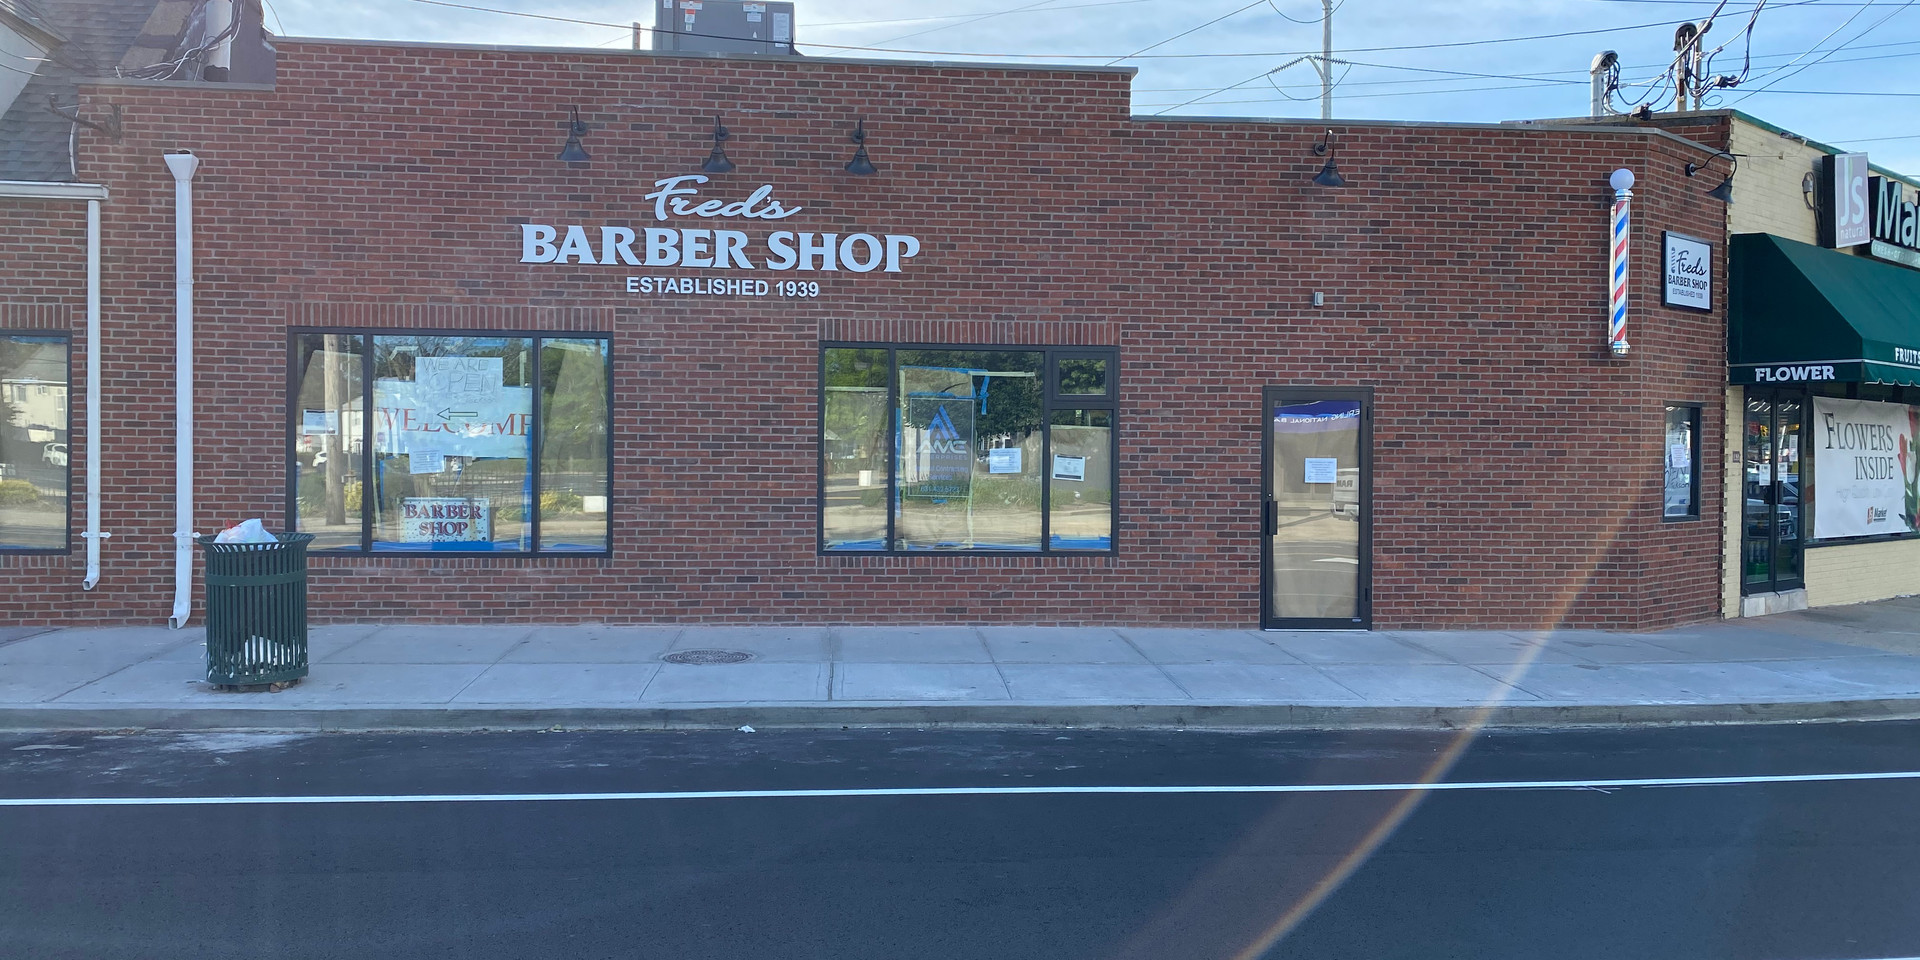 Barbershop Facade After